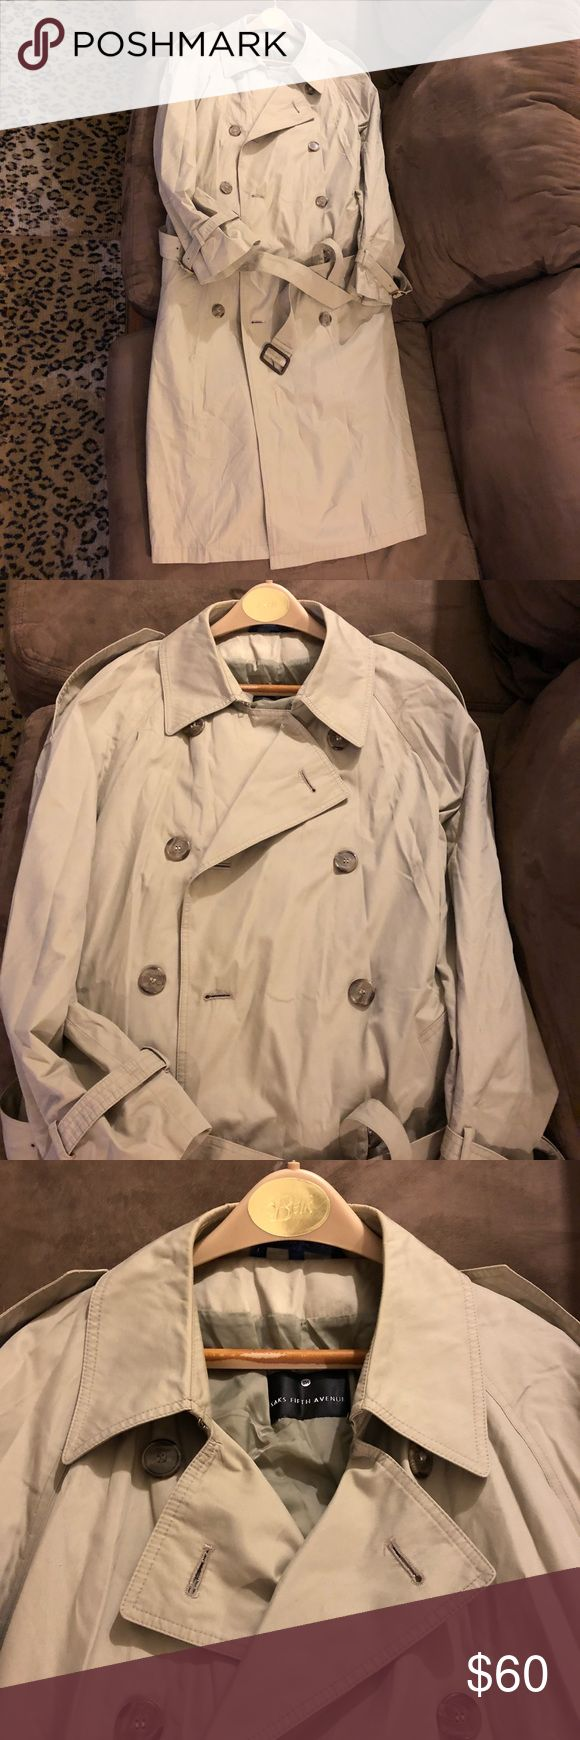 Saks Fifth Avenue Tan Trench Coat 44R Saks Fifth Avenue Solid Tan Double Breasted Cotton Trench coat Overcoat Rain Coat size 44R Regular! Great condition! Please make reasonable offers and bundle! Ask questions! Saks Fifth Avenue Jackets & Coats Trench Coats